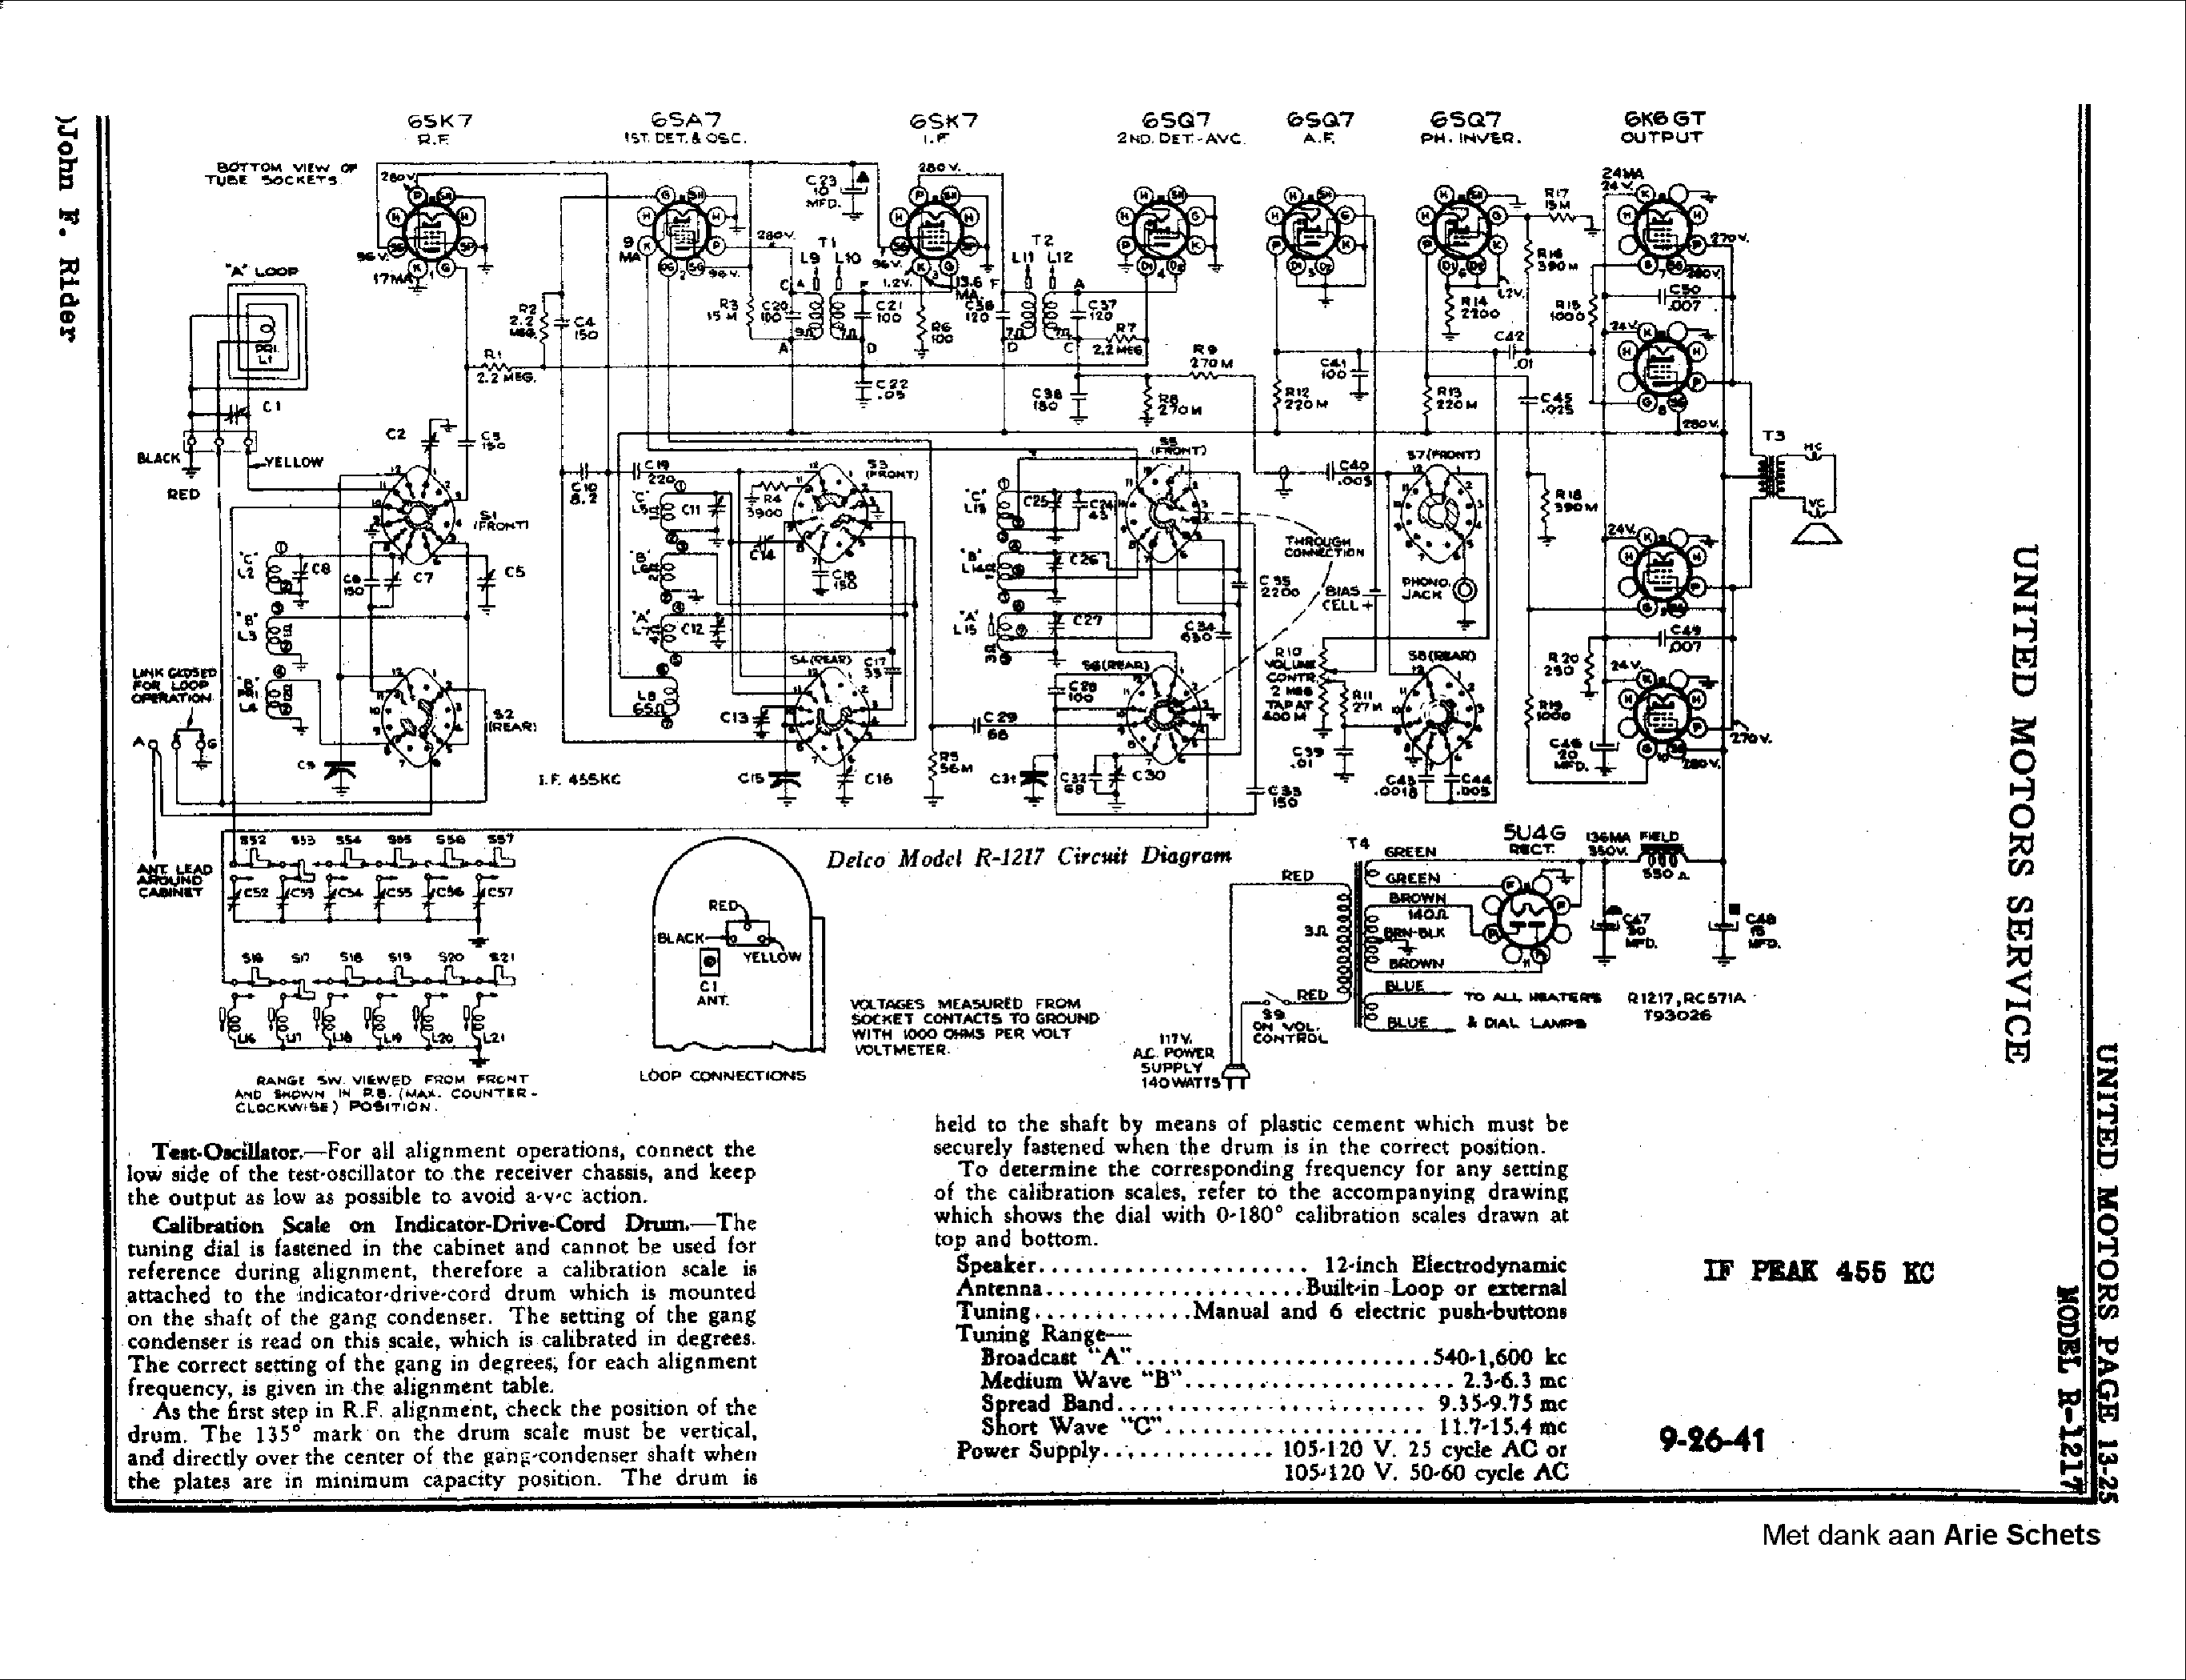 delco r1217 radio 1941 sch service manual download schematics rh elektrotanya com delco auto radio schematics delco car radio schematics